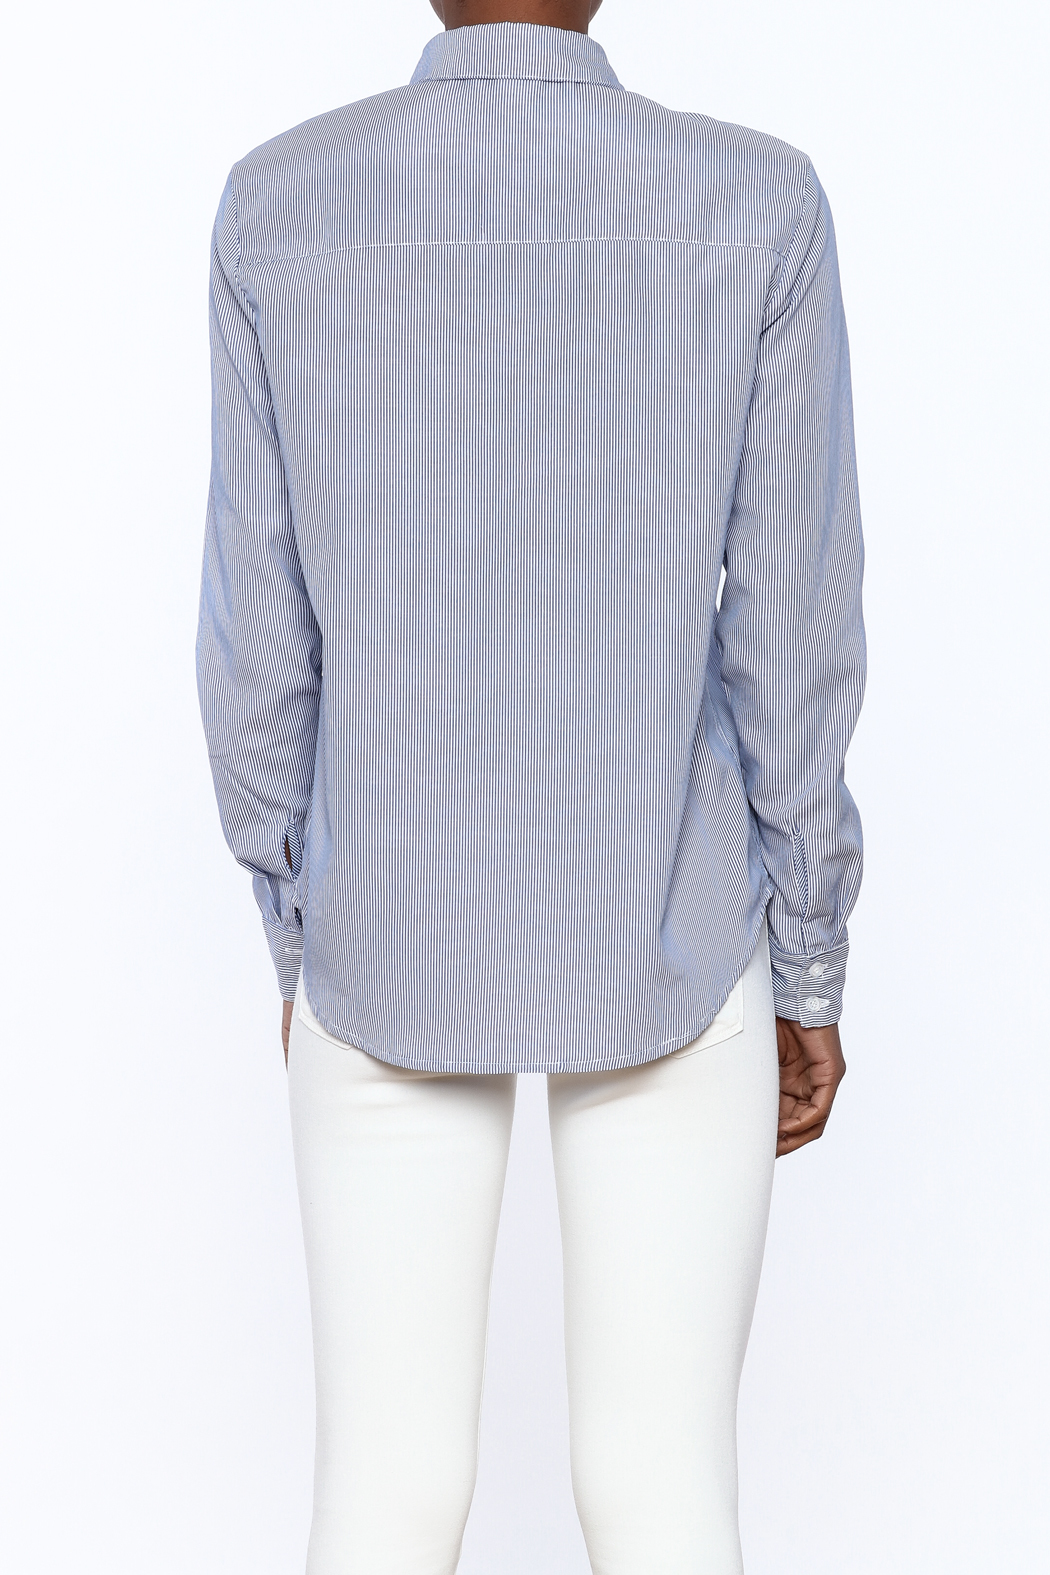 Current Air Embroidered Button Down - Back Cropped Image